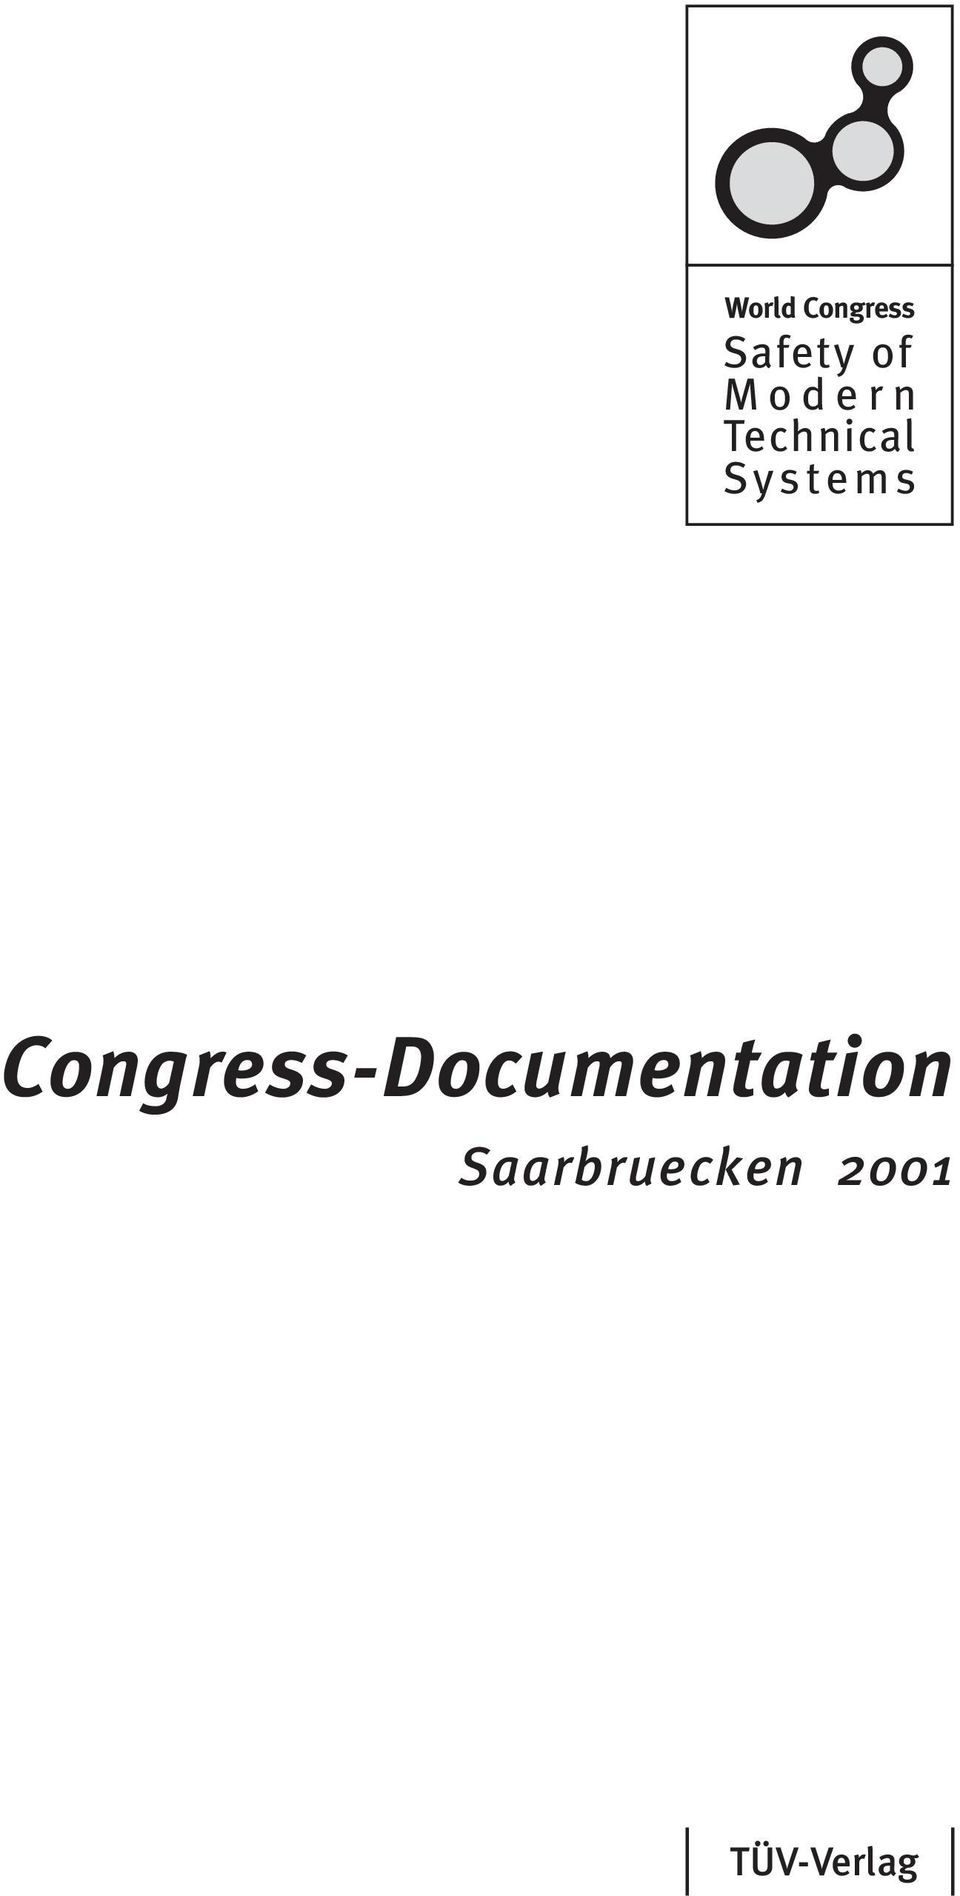 Congress-Documentation